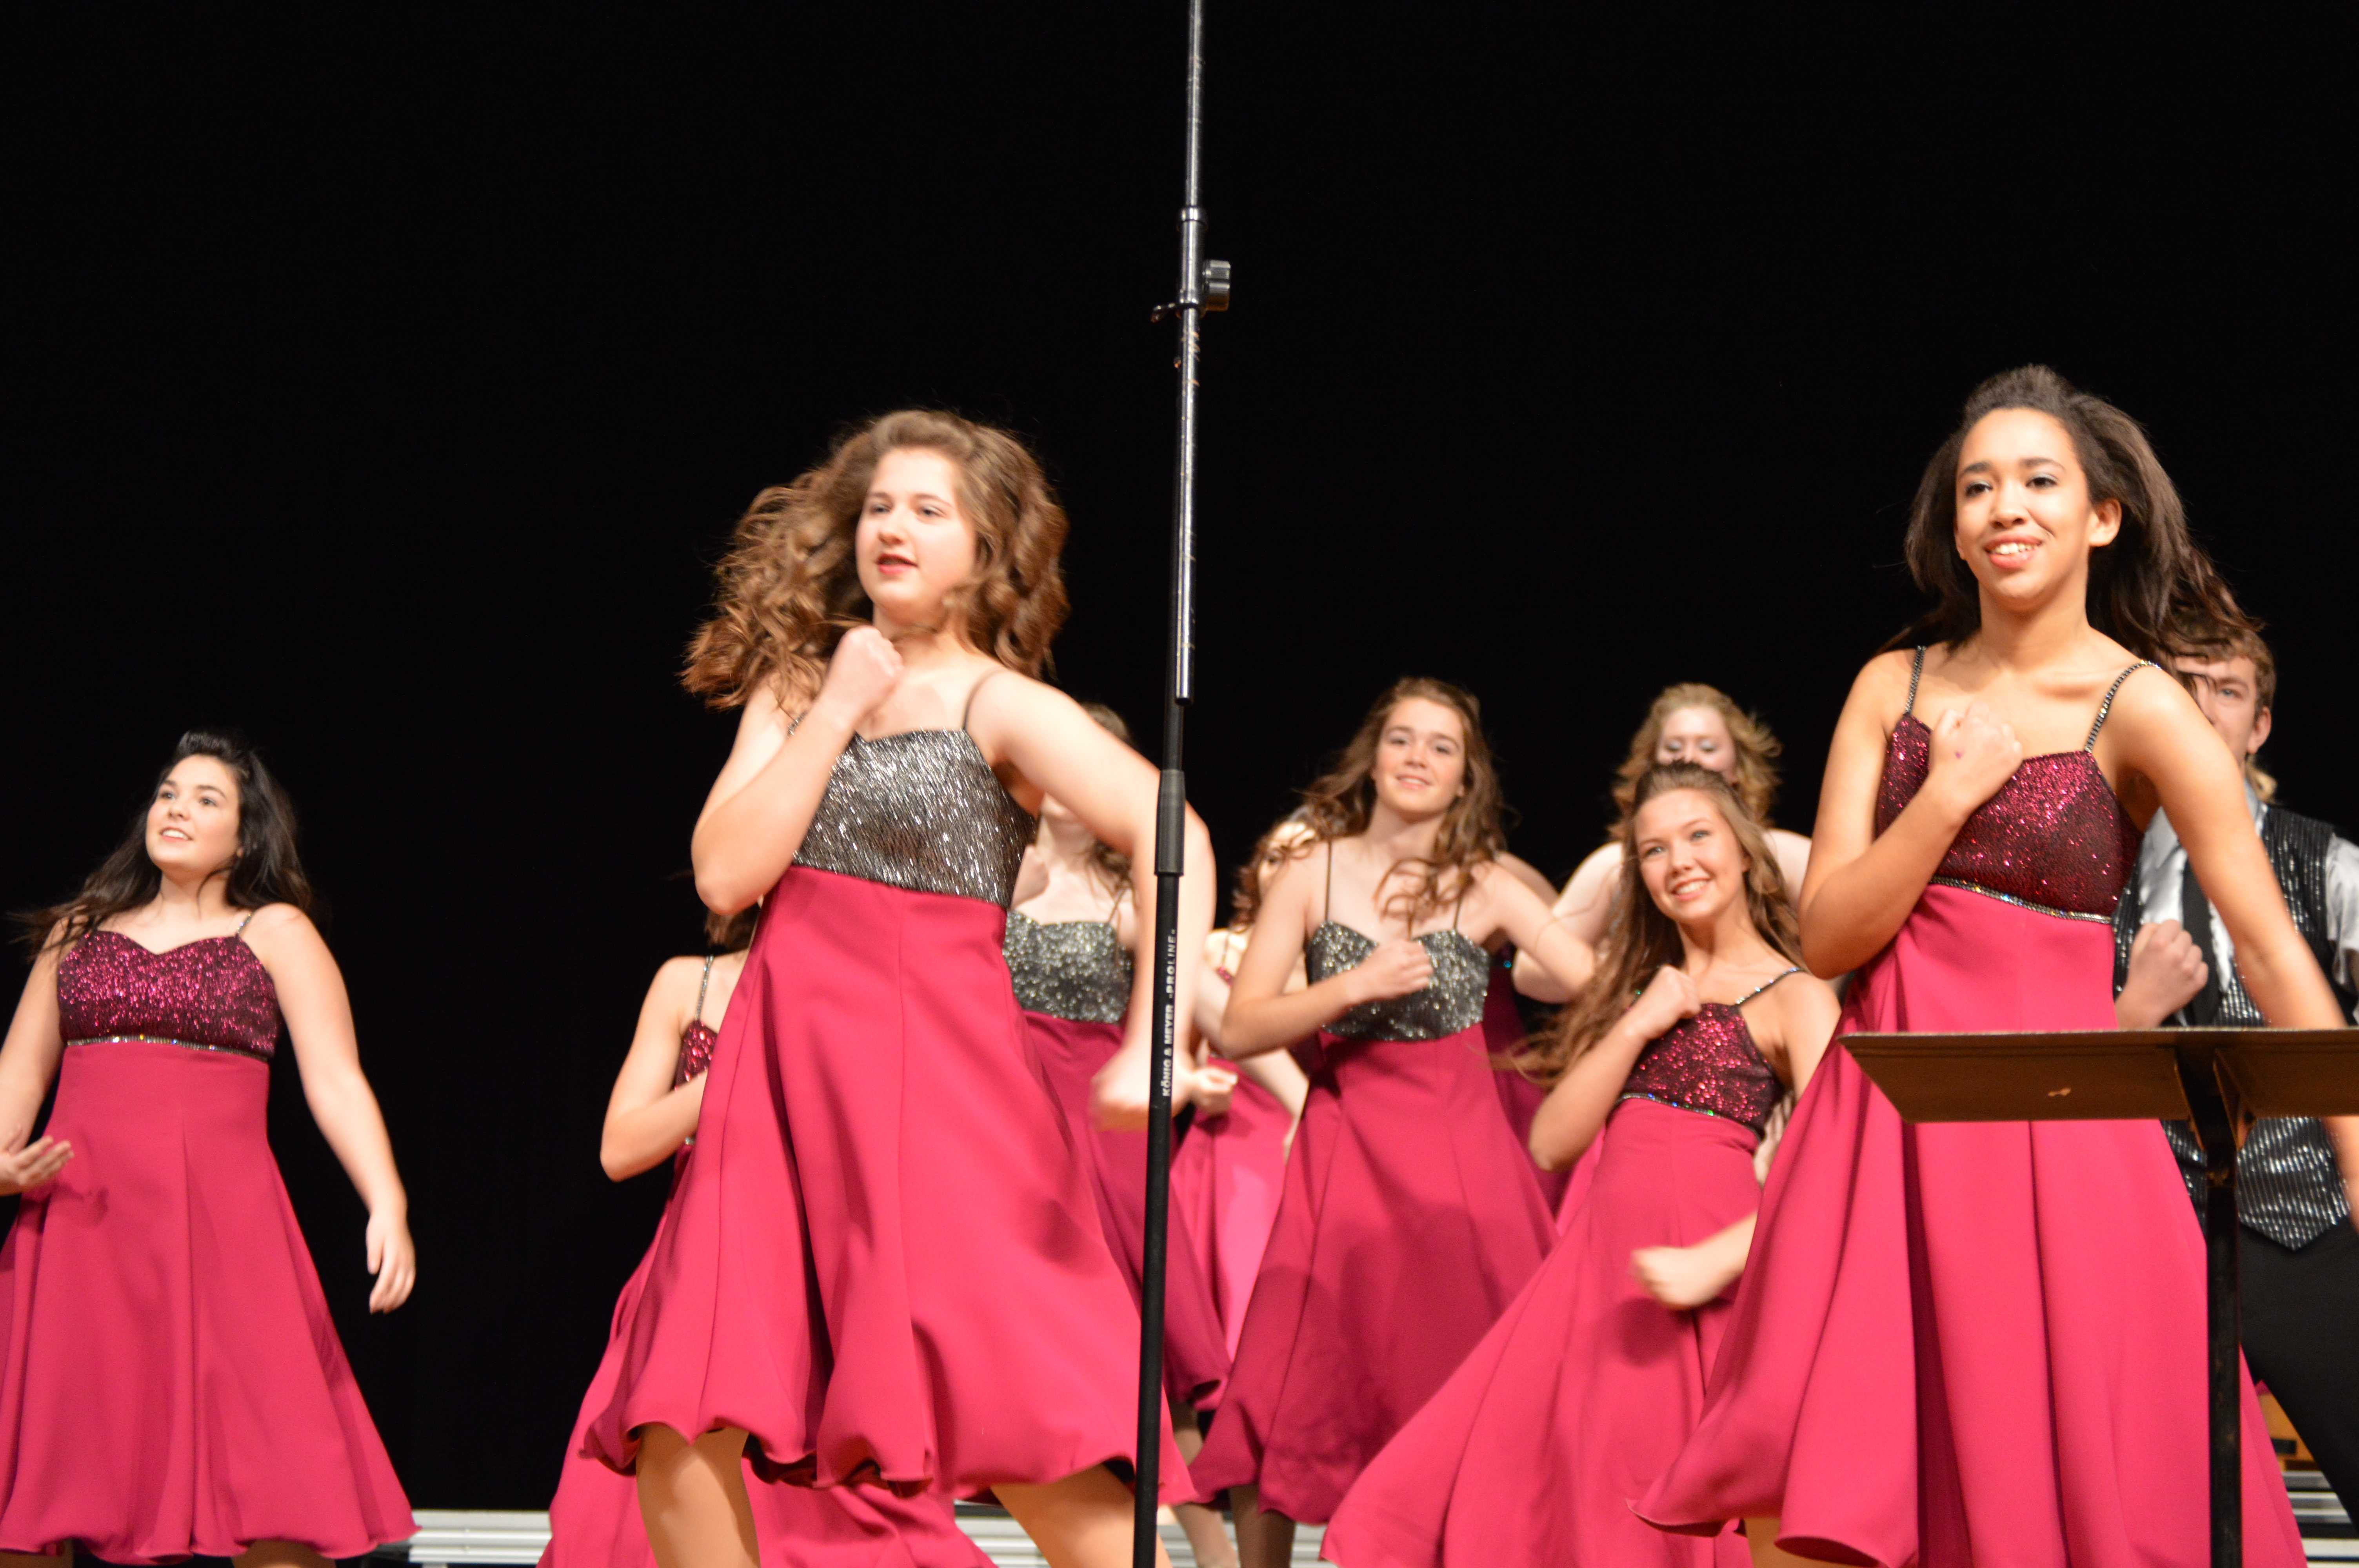 Watch How to Be Good at Showchoir video